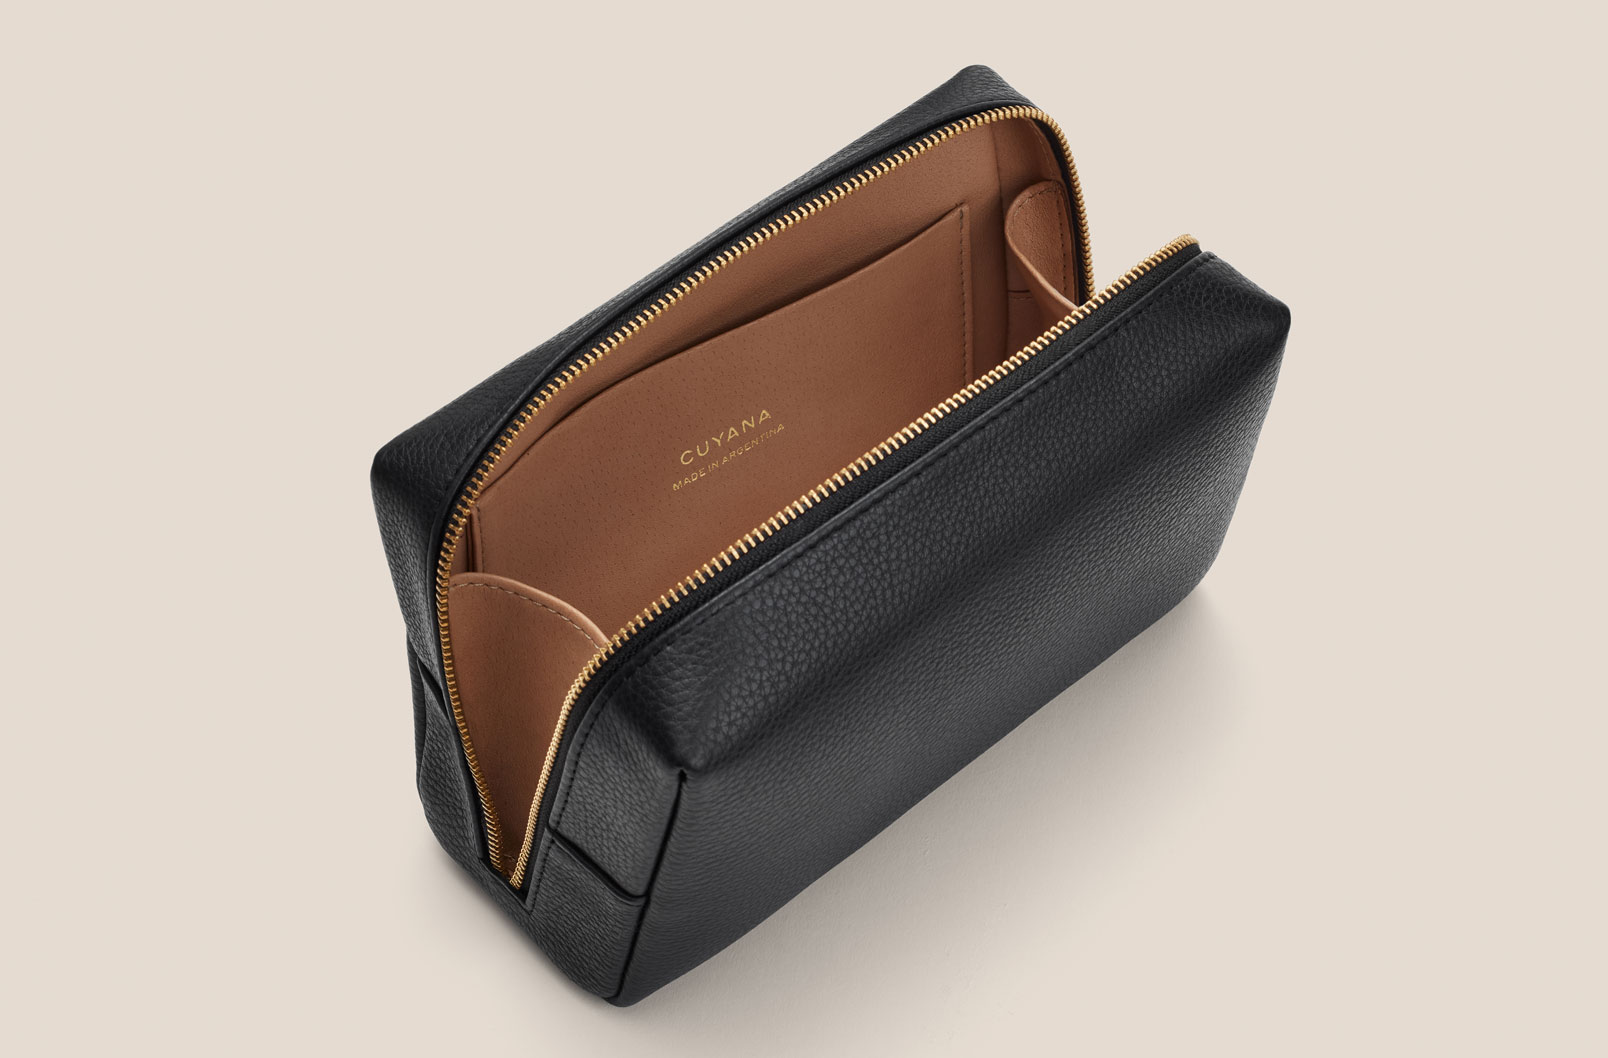 Cuyana Vanity Case interior with gussets for easy access